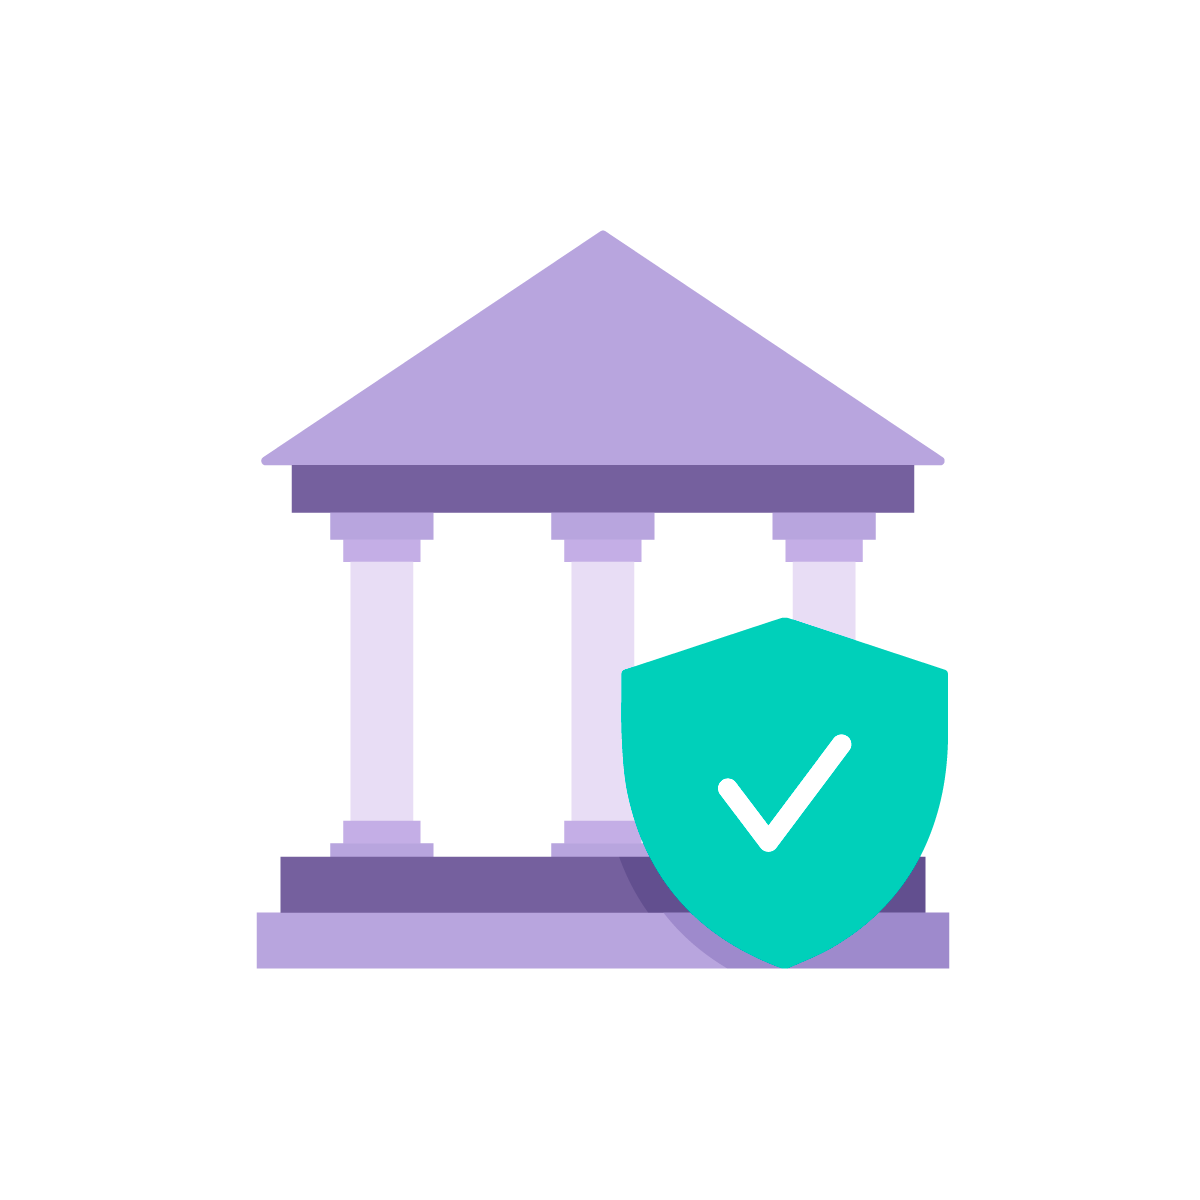 Icon of bank with high security check